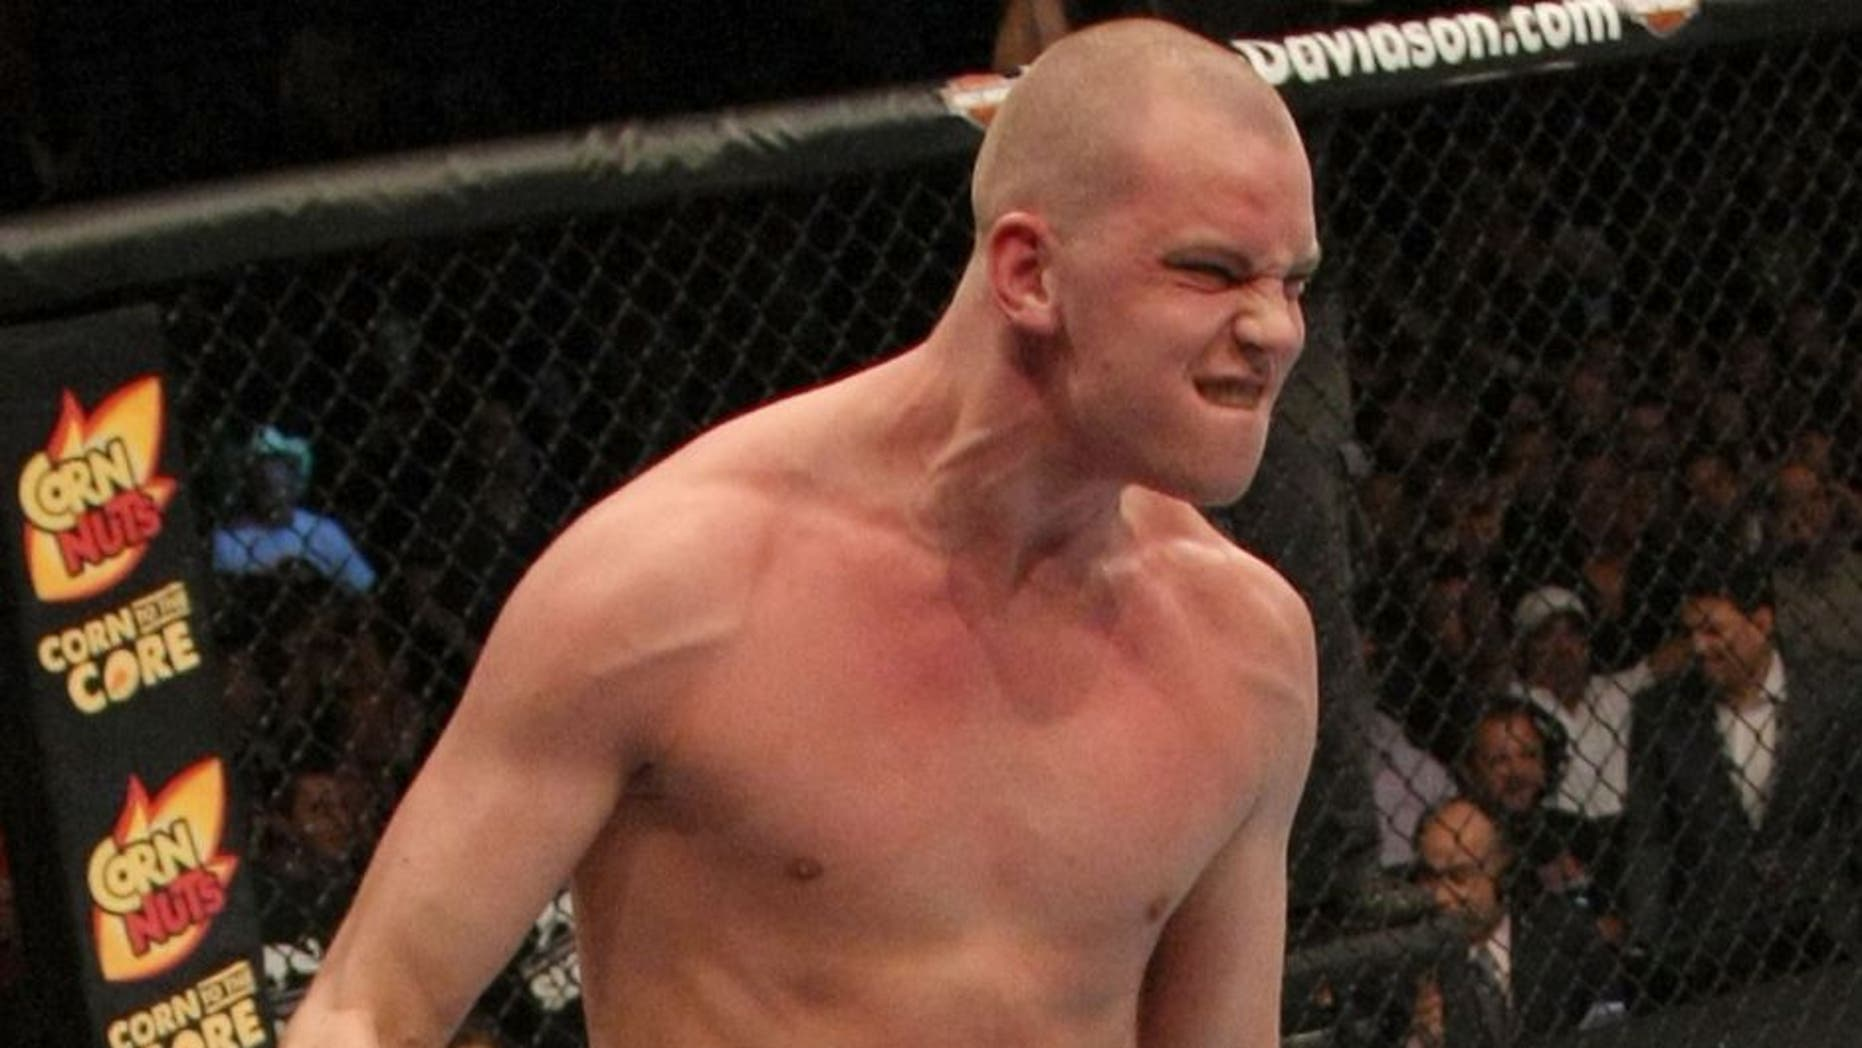 LAS VEGAS, NV - MAY 26: Stefan Struve reacts to his submission win over Lavar Johnson during a heavyweight bout at UFC 146 at MGM Grand Garden Arena on May 26, 2012 in Las Vegas, Nevada. (Photo by Donald Miralle/Zuffa LLC/Zuffa LLC via Getty Images)